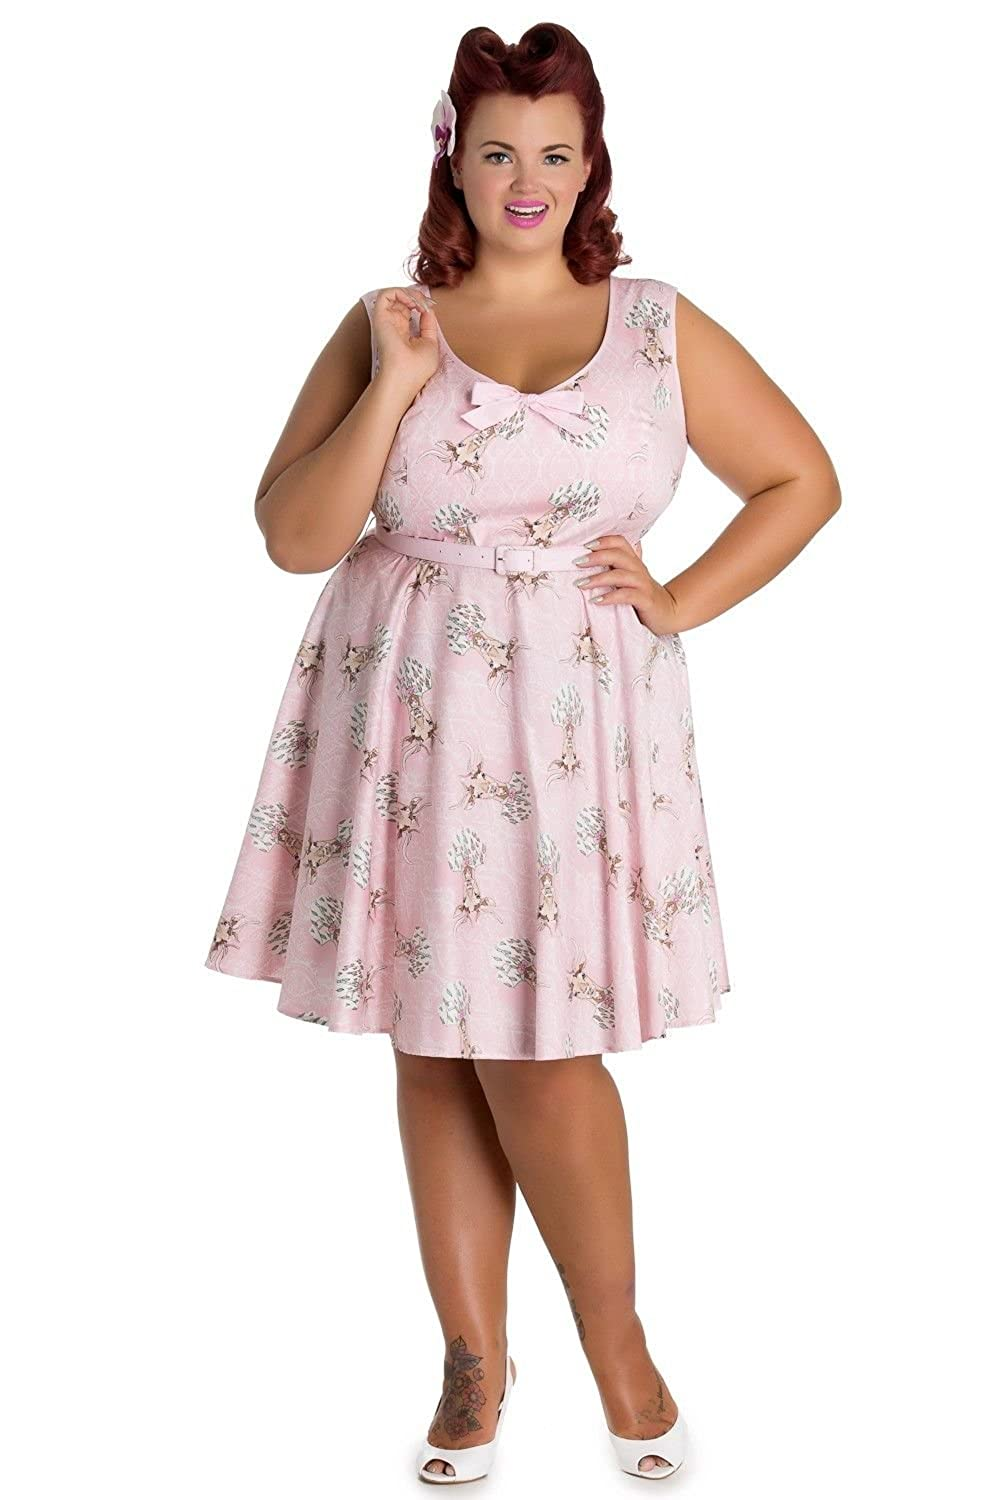 1950s Swing Dresses Hell Bunny Deery Me Short Skater Vintage Pinup Dress $29.99 AT vintagedancer.com